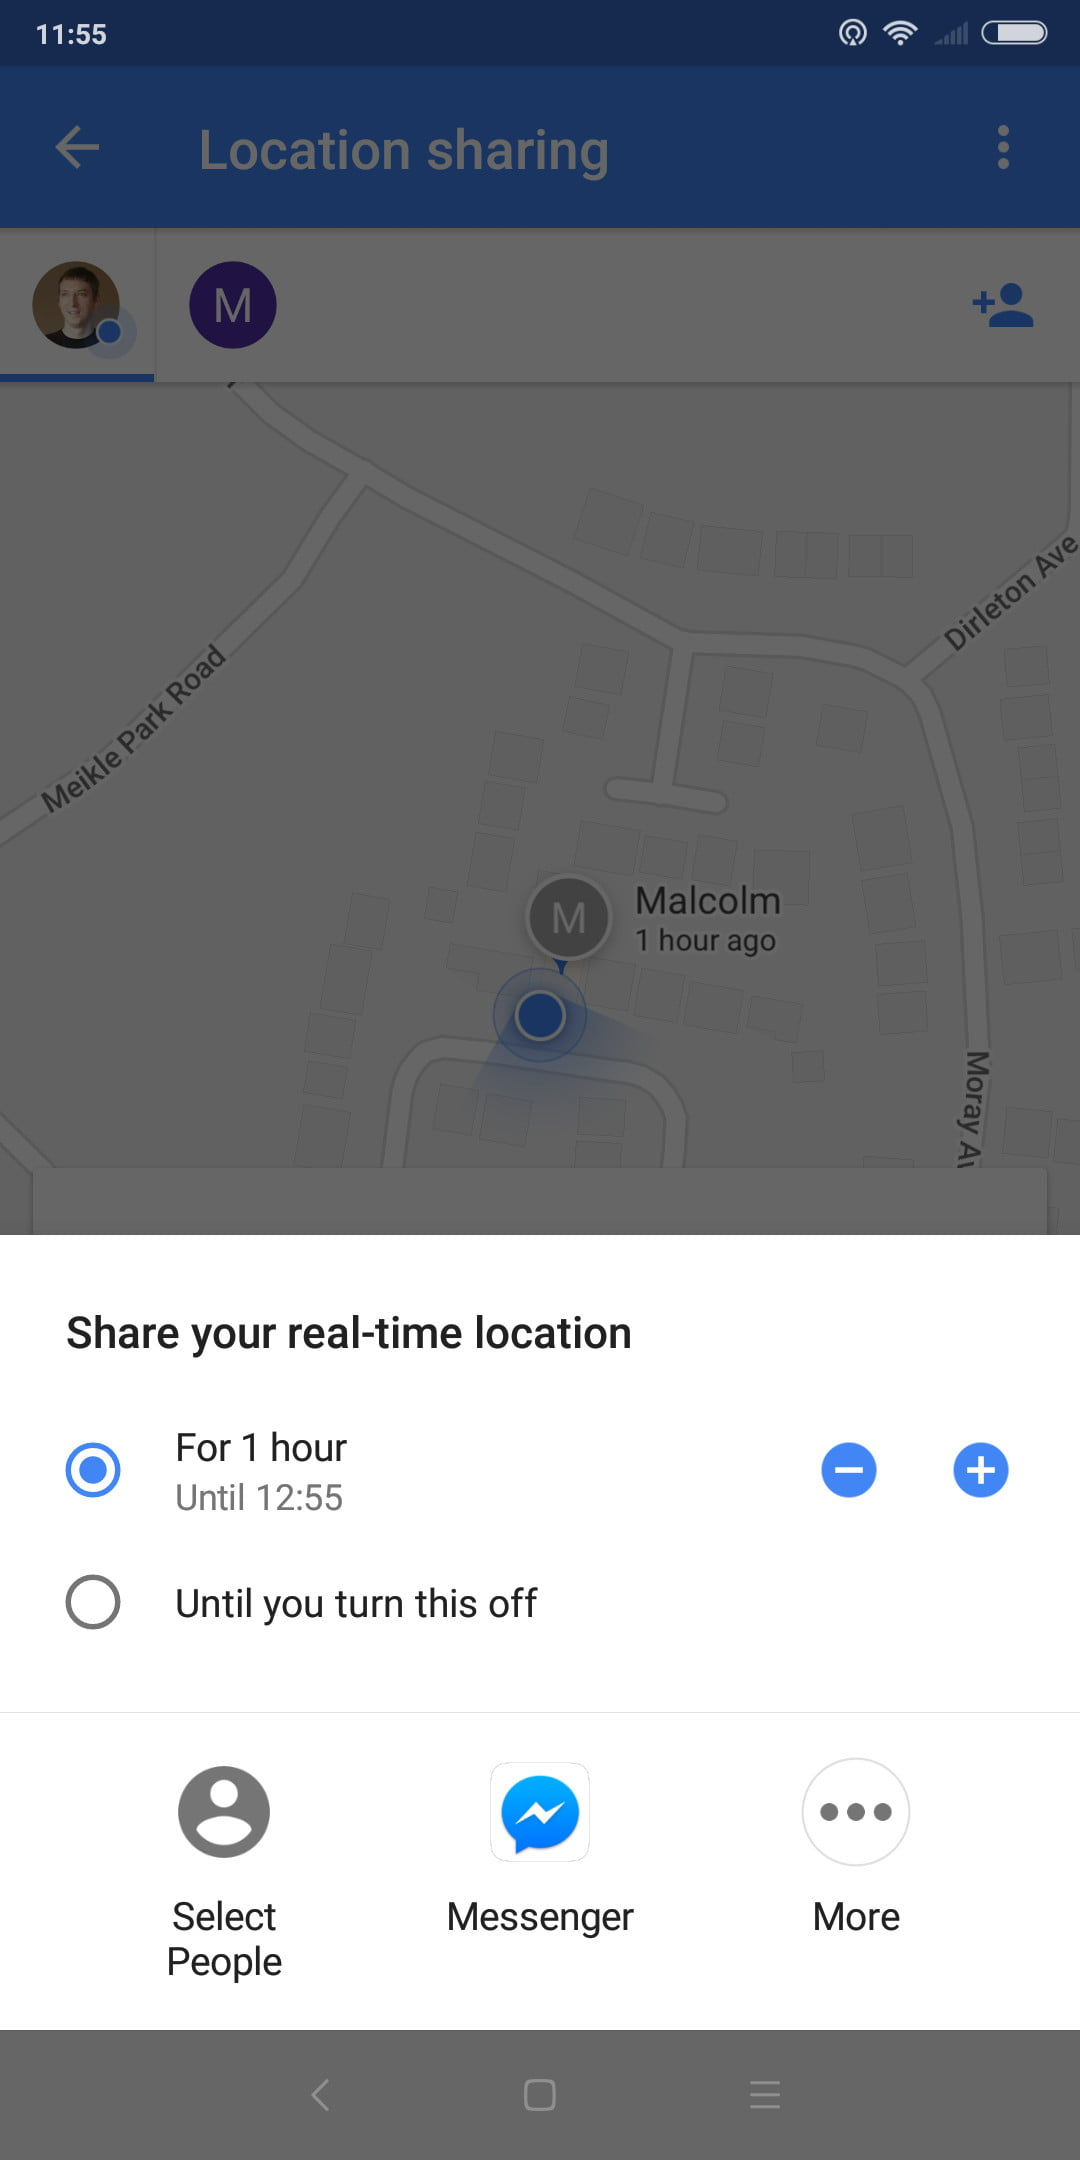 How to Use Google Maps | Digital Trends Google Maps Ai on google cy, google bo, google api, google aids, google si, google tg, google bt, google fake, google nc, google eg, google antigravity, google ge, google tz, google ti, google ey, google deepmind, google wo, google ig, google gameplay,